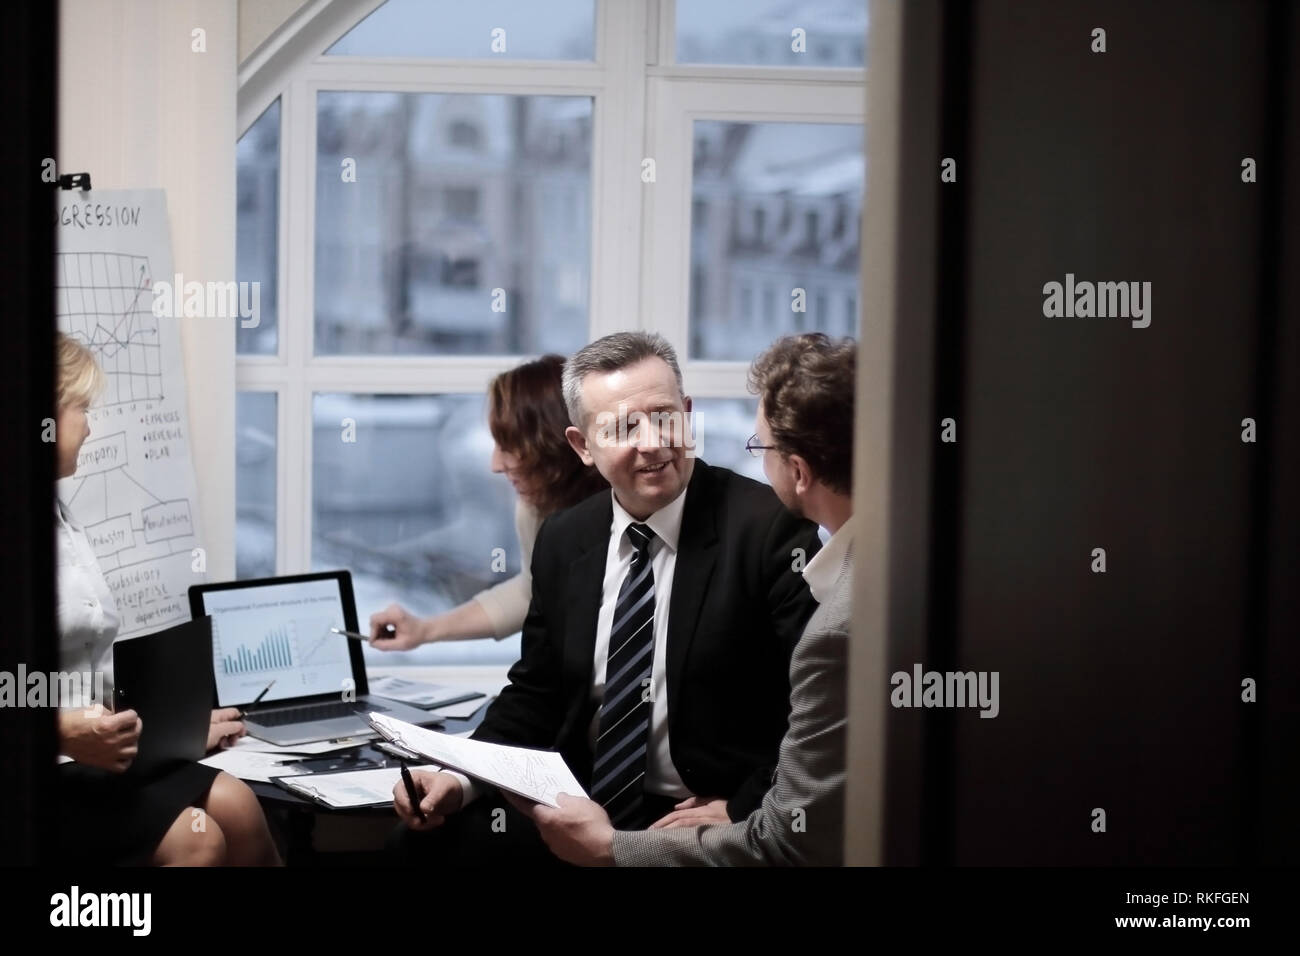 business partners engaged in dialogue in a modern office. - Stock Image